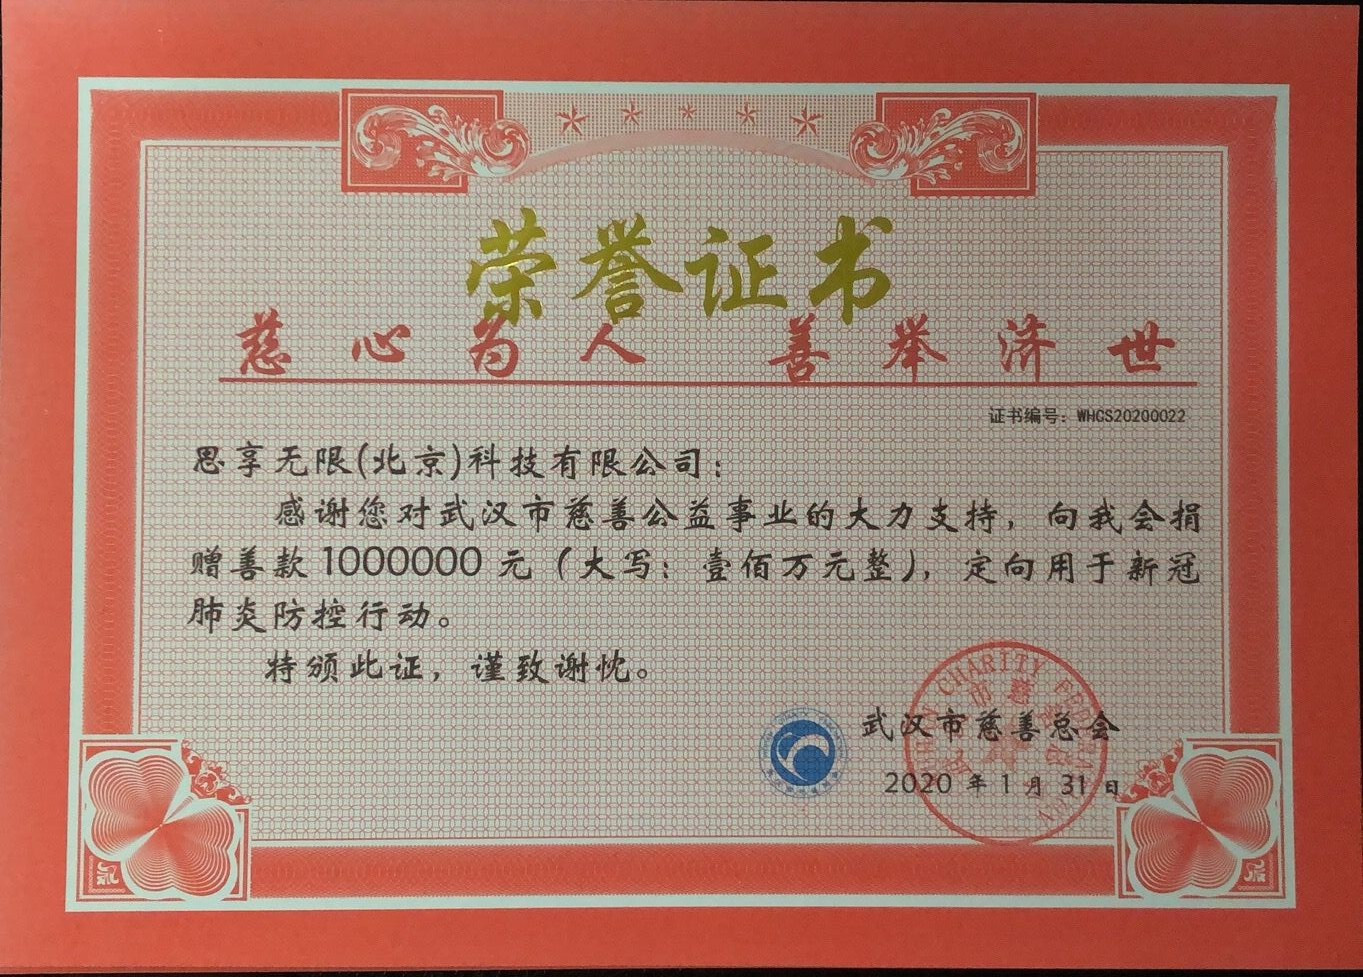 Wuhan COVID-19 Prevention and Control Action Donation Certificate